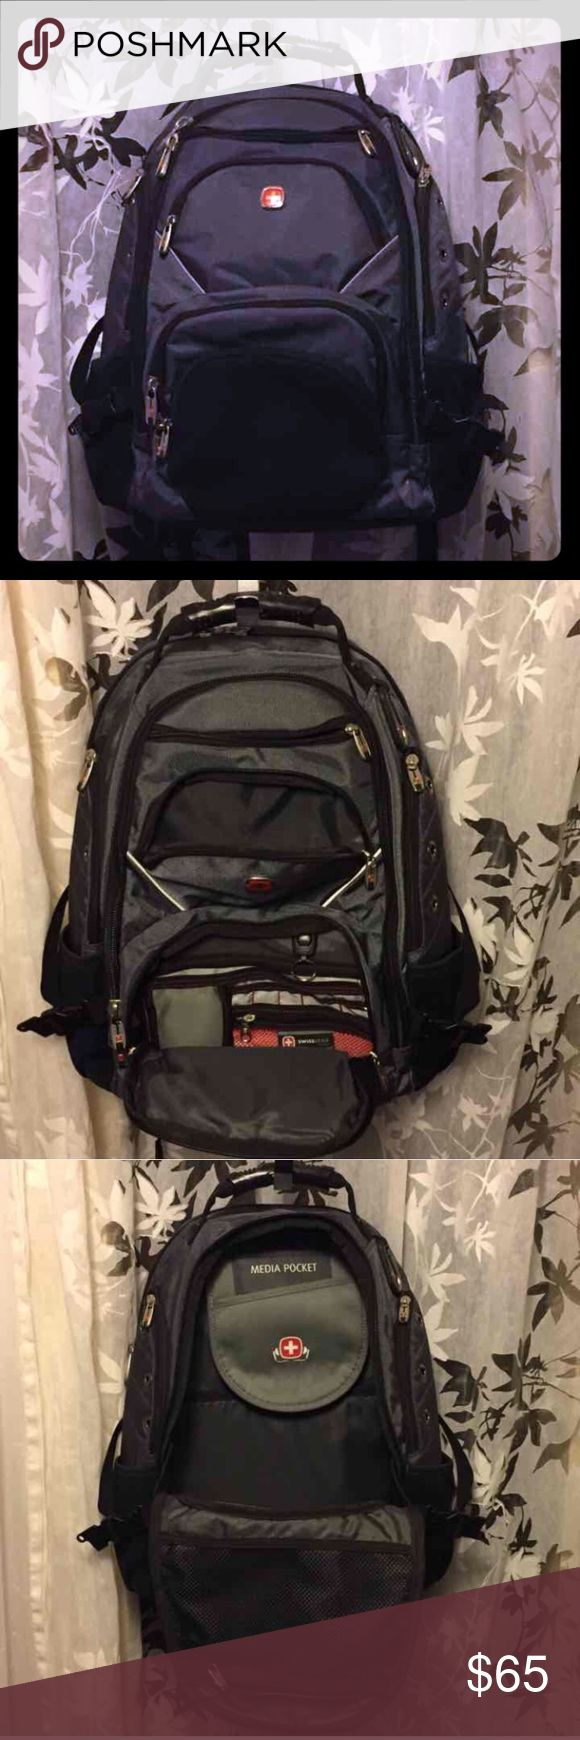 Swiss Gear Back Pack Hiking Pack Fully loaded hiking gear pack in gray and black. Never used SwissGear Bags Backpacks